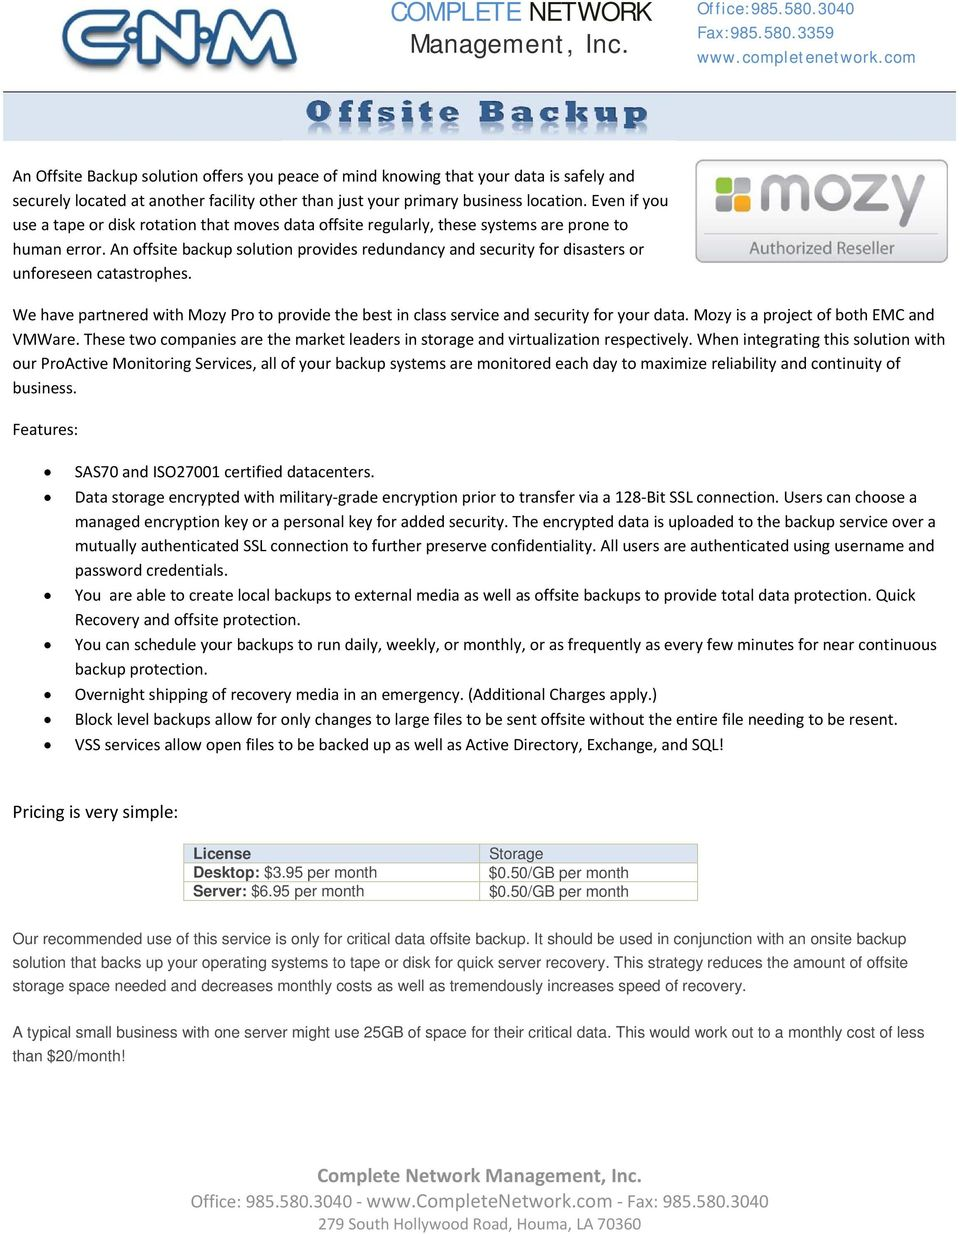 An offsite backup solution provides redundancy and security for disasters or unforeseen catastrophes. We have partnered with Mozy Pro to provide the best in class service and security for your data.